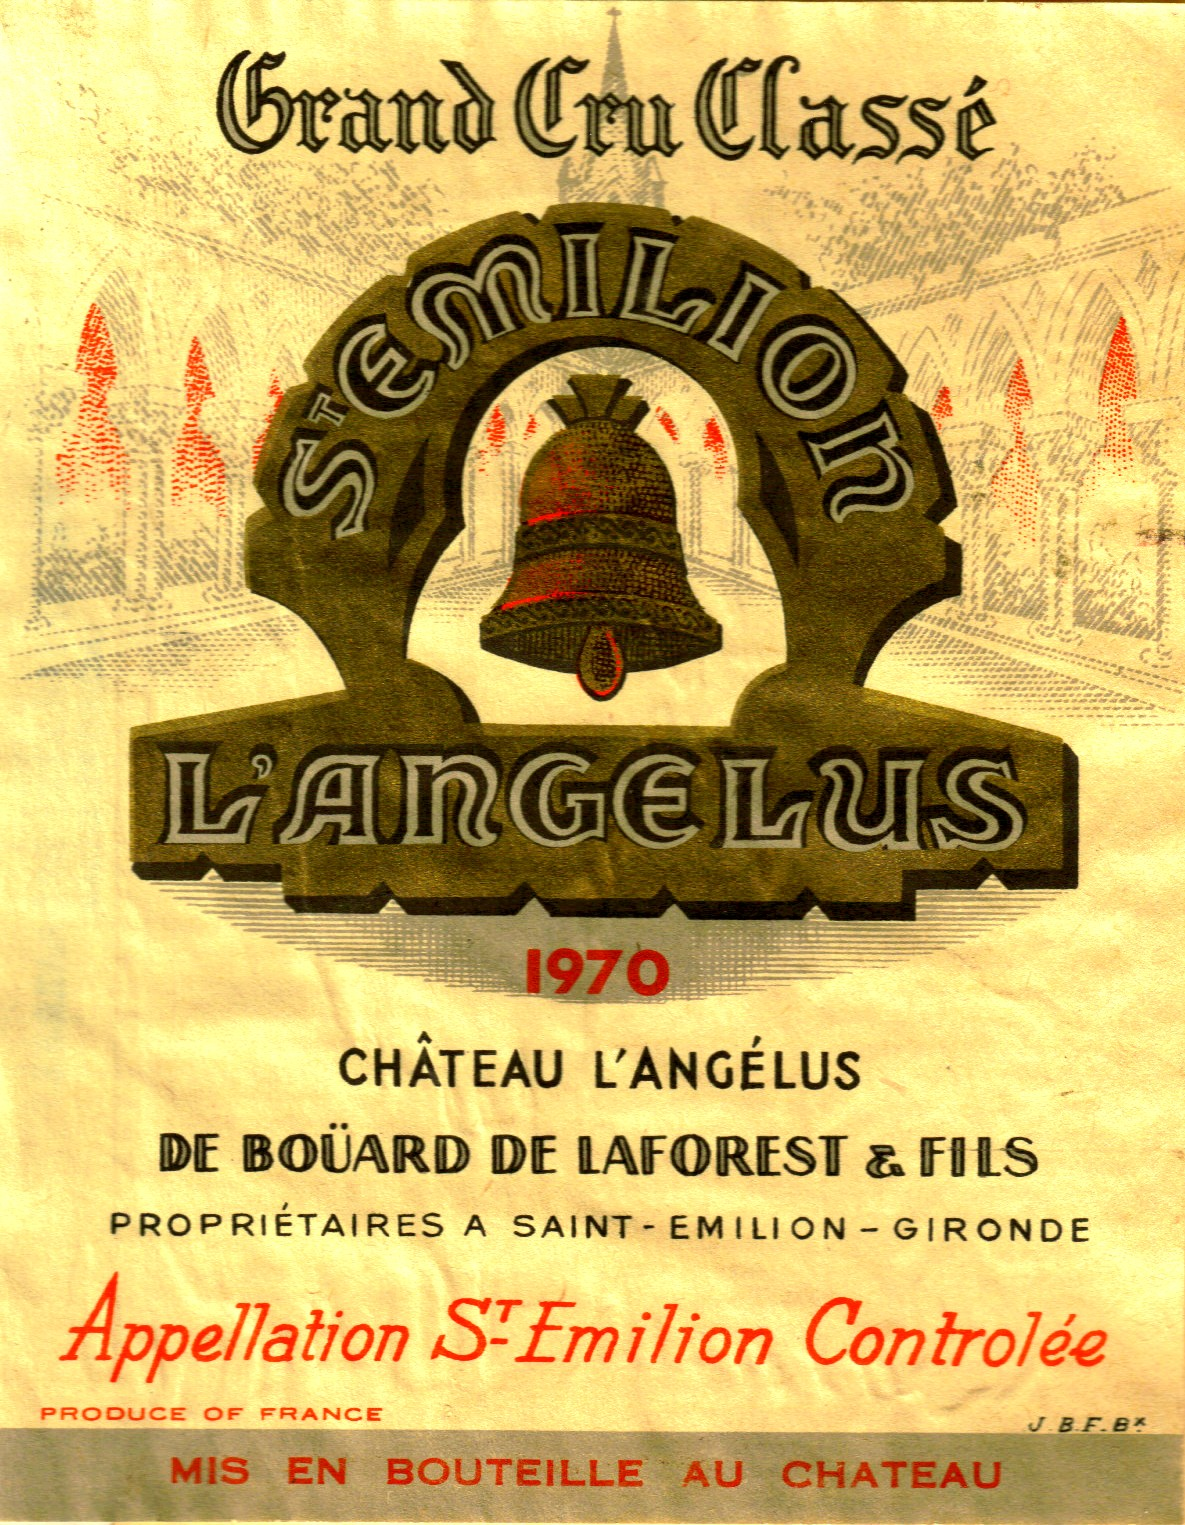 Saint emilion the wine raconteur for Chateau angelus